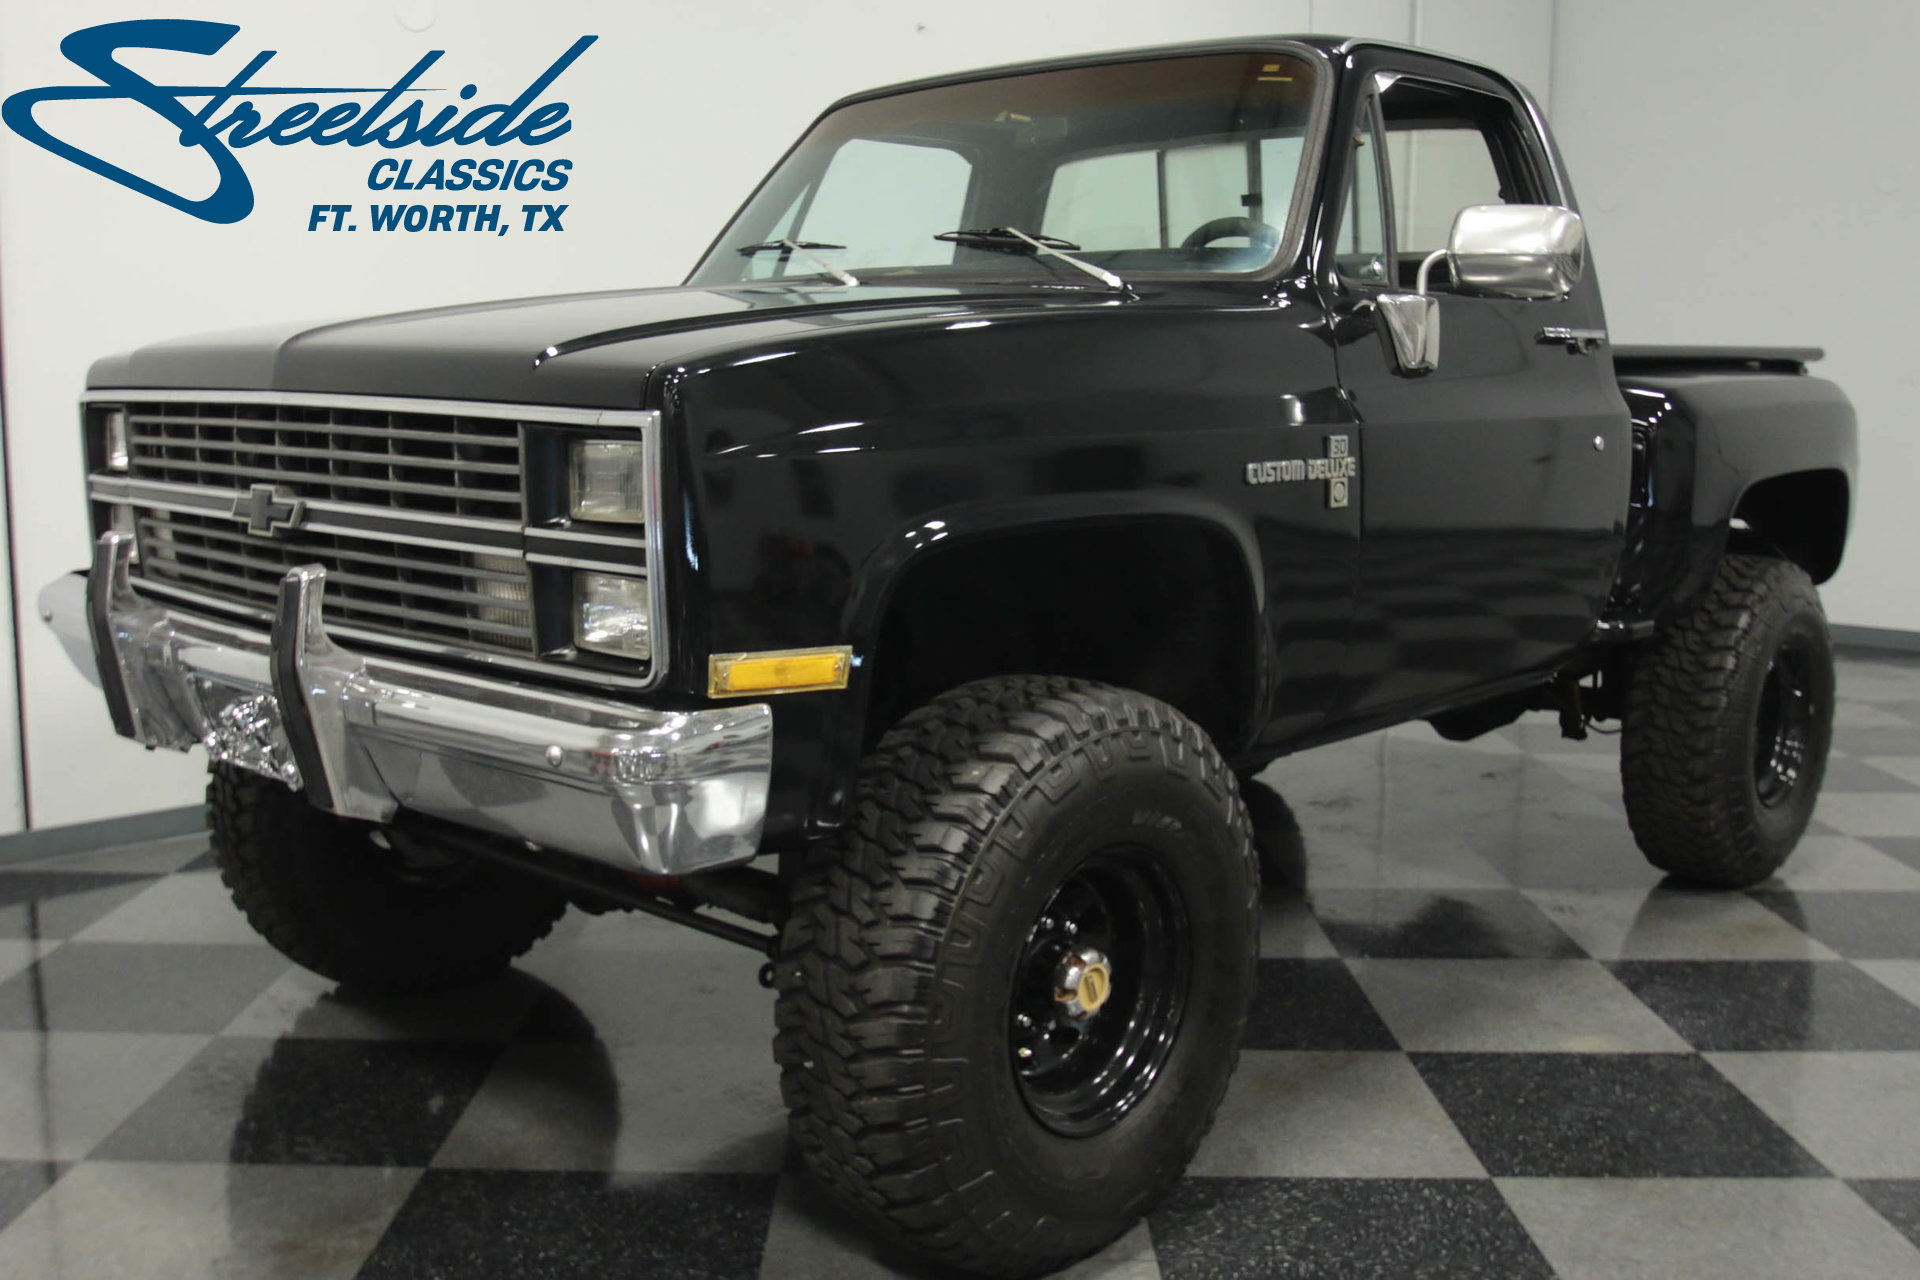 1976 chevrolet k 10 streetside classics the nation 39 s trusted classic car consignment dealer. Black Bedroom Furniture Sets. Home Design Ideas